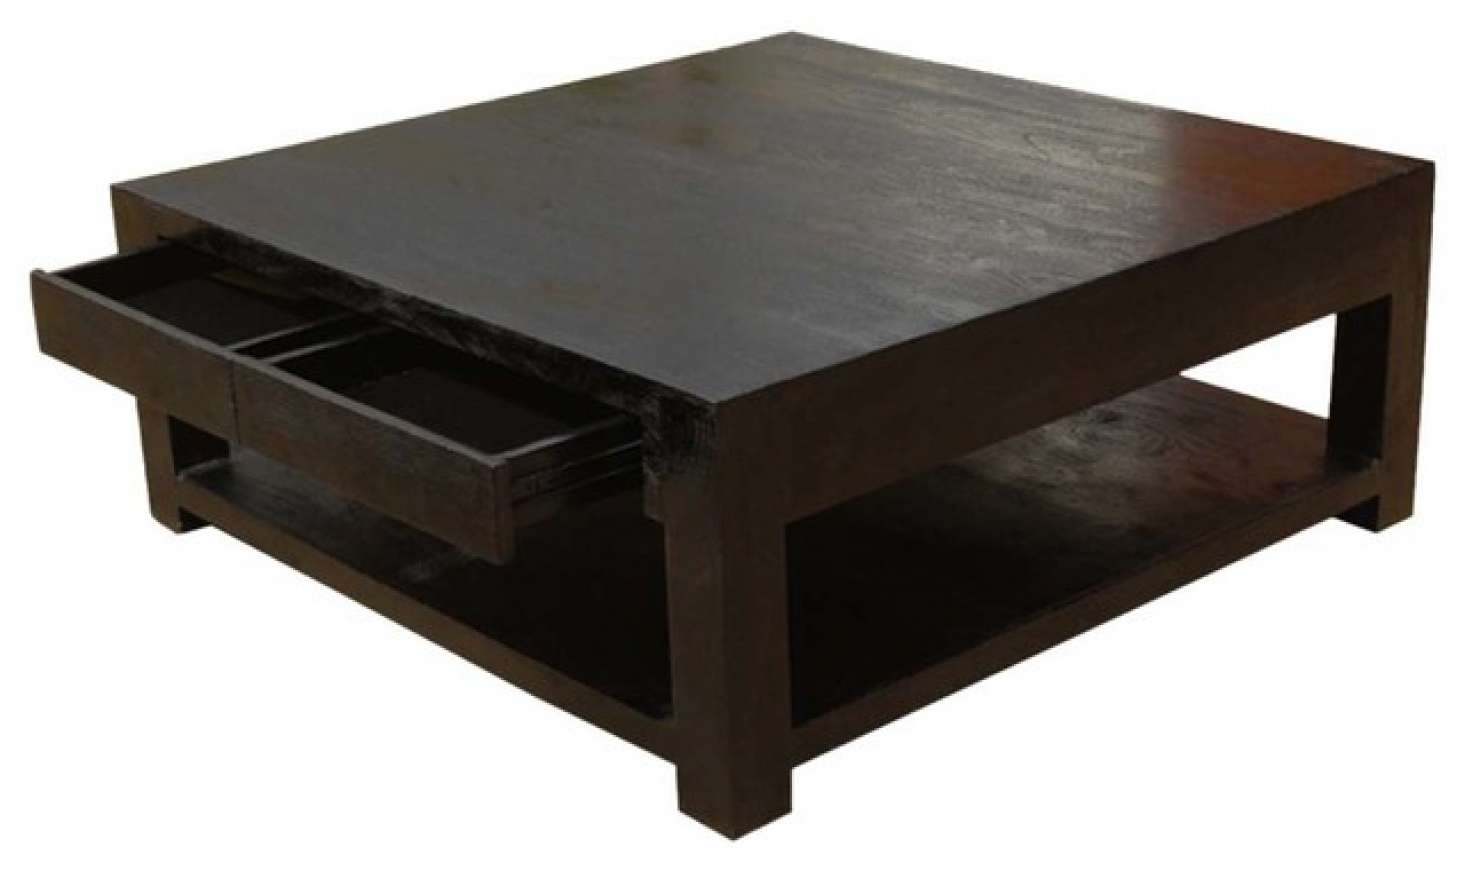 Oversized Square Coffee Tables For Newest Square Coffee Tables (View 5 of 20)